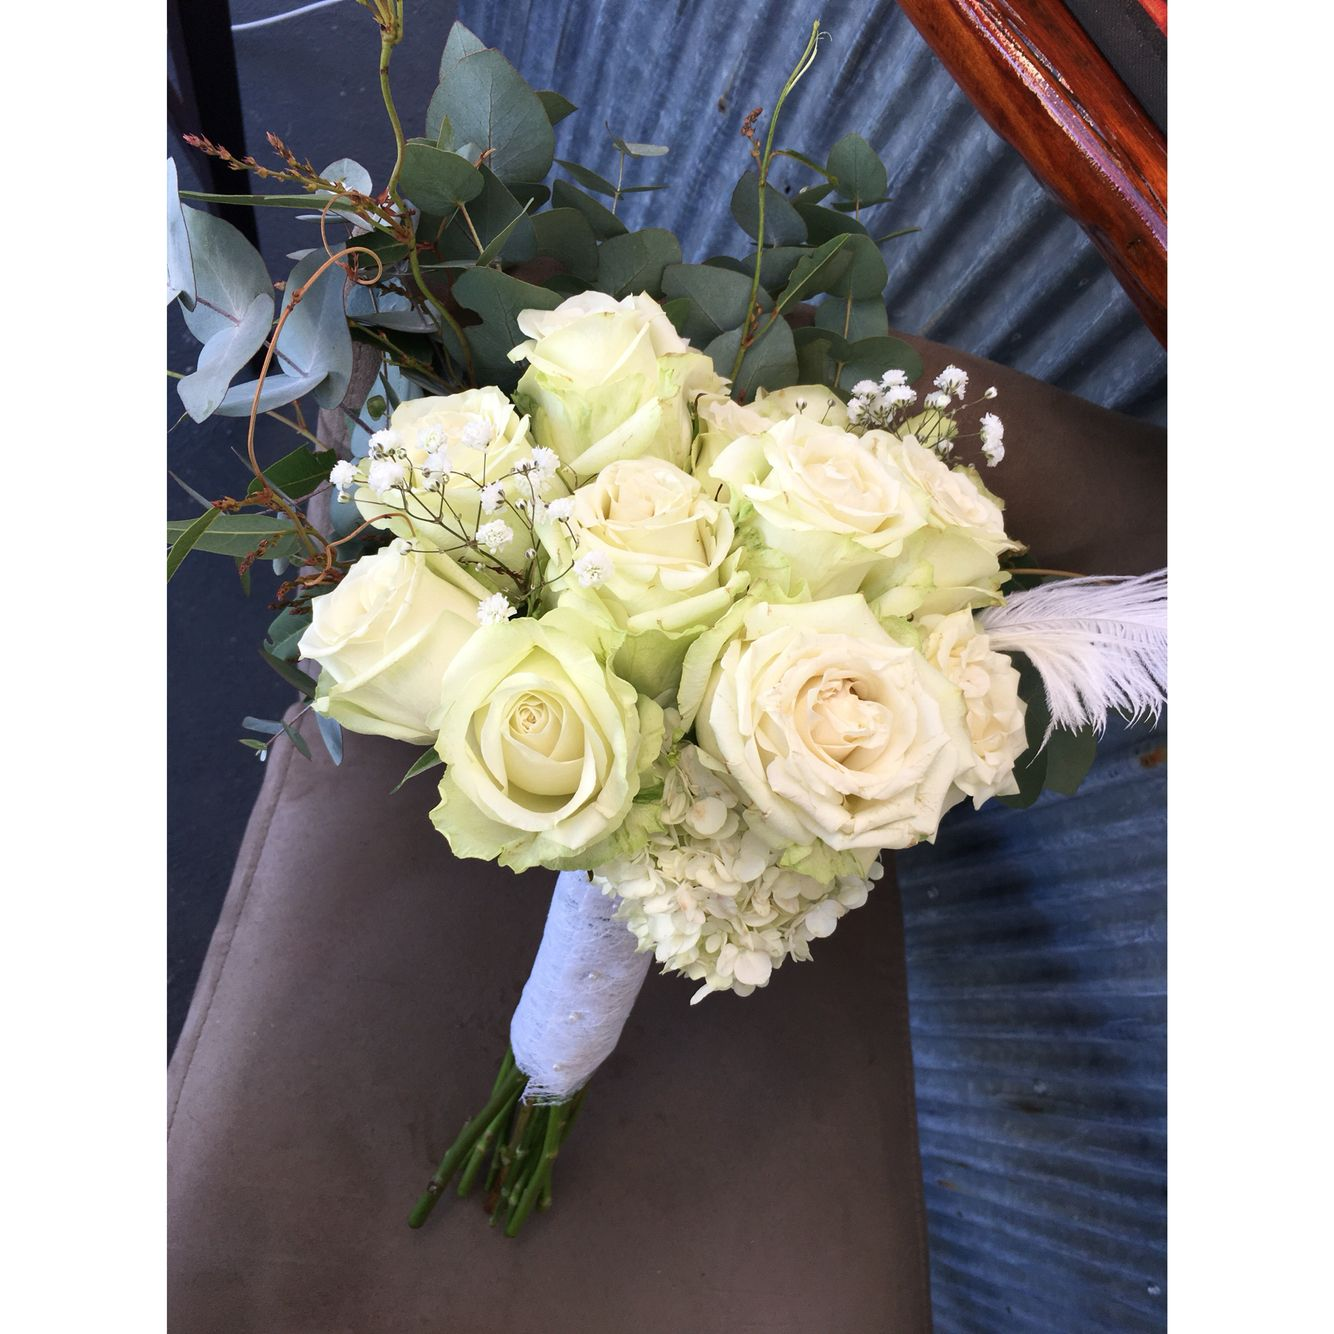 Bouquet For The Geelong Brides Wedding Expo Bridal House Fashion Show White Hydrangea White Roses Blue Gum H Wedding Expo Event Flowers Wedding Events